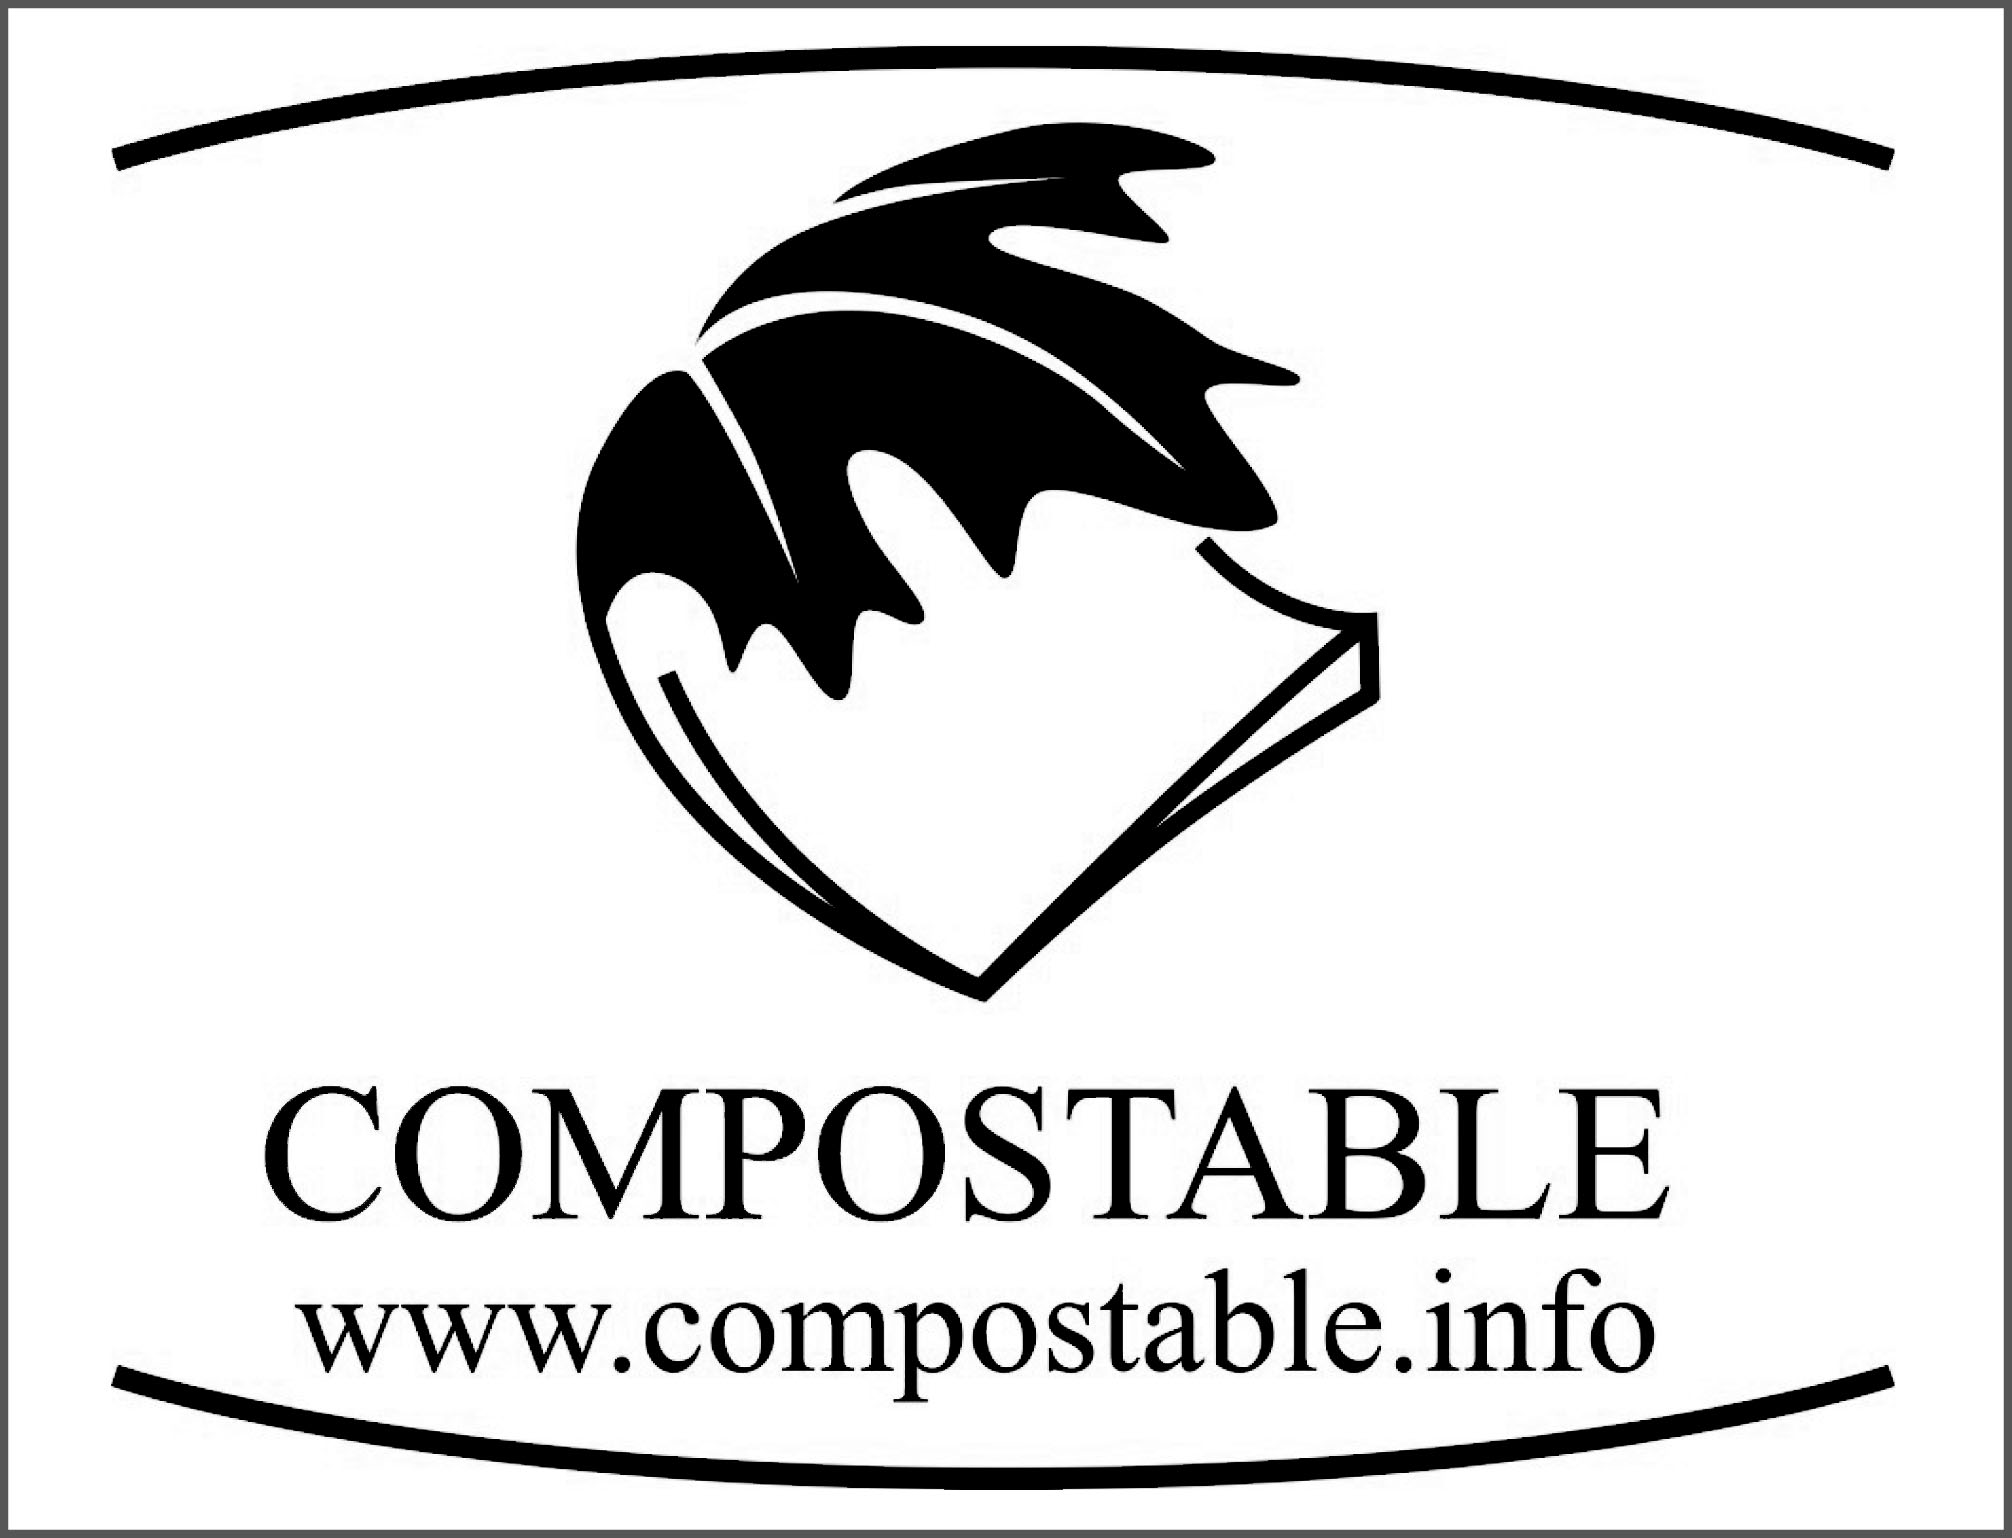 Canadian Certified compostable logo